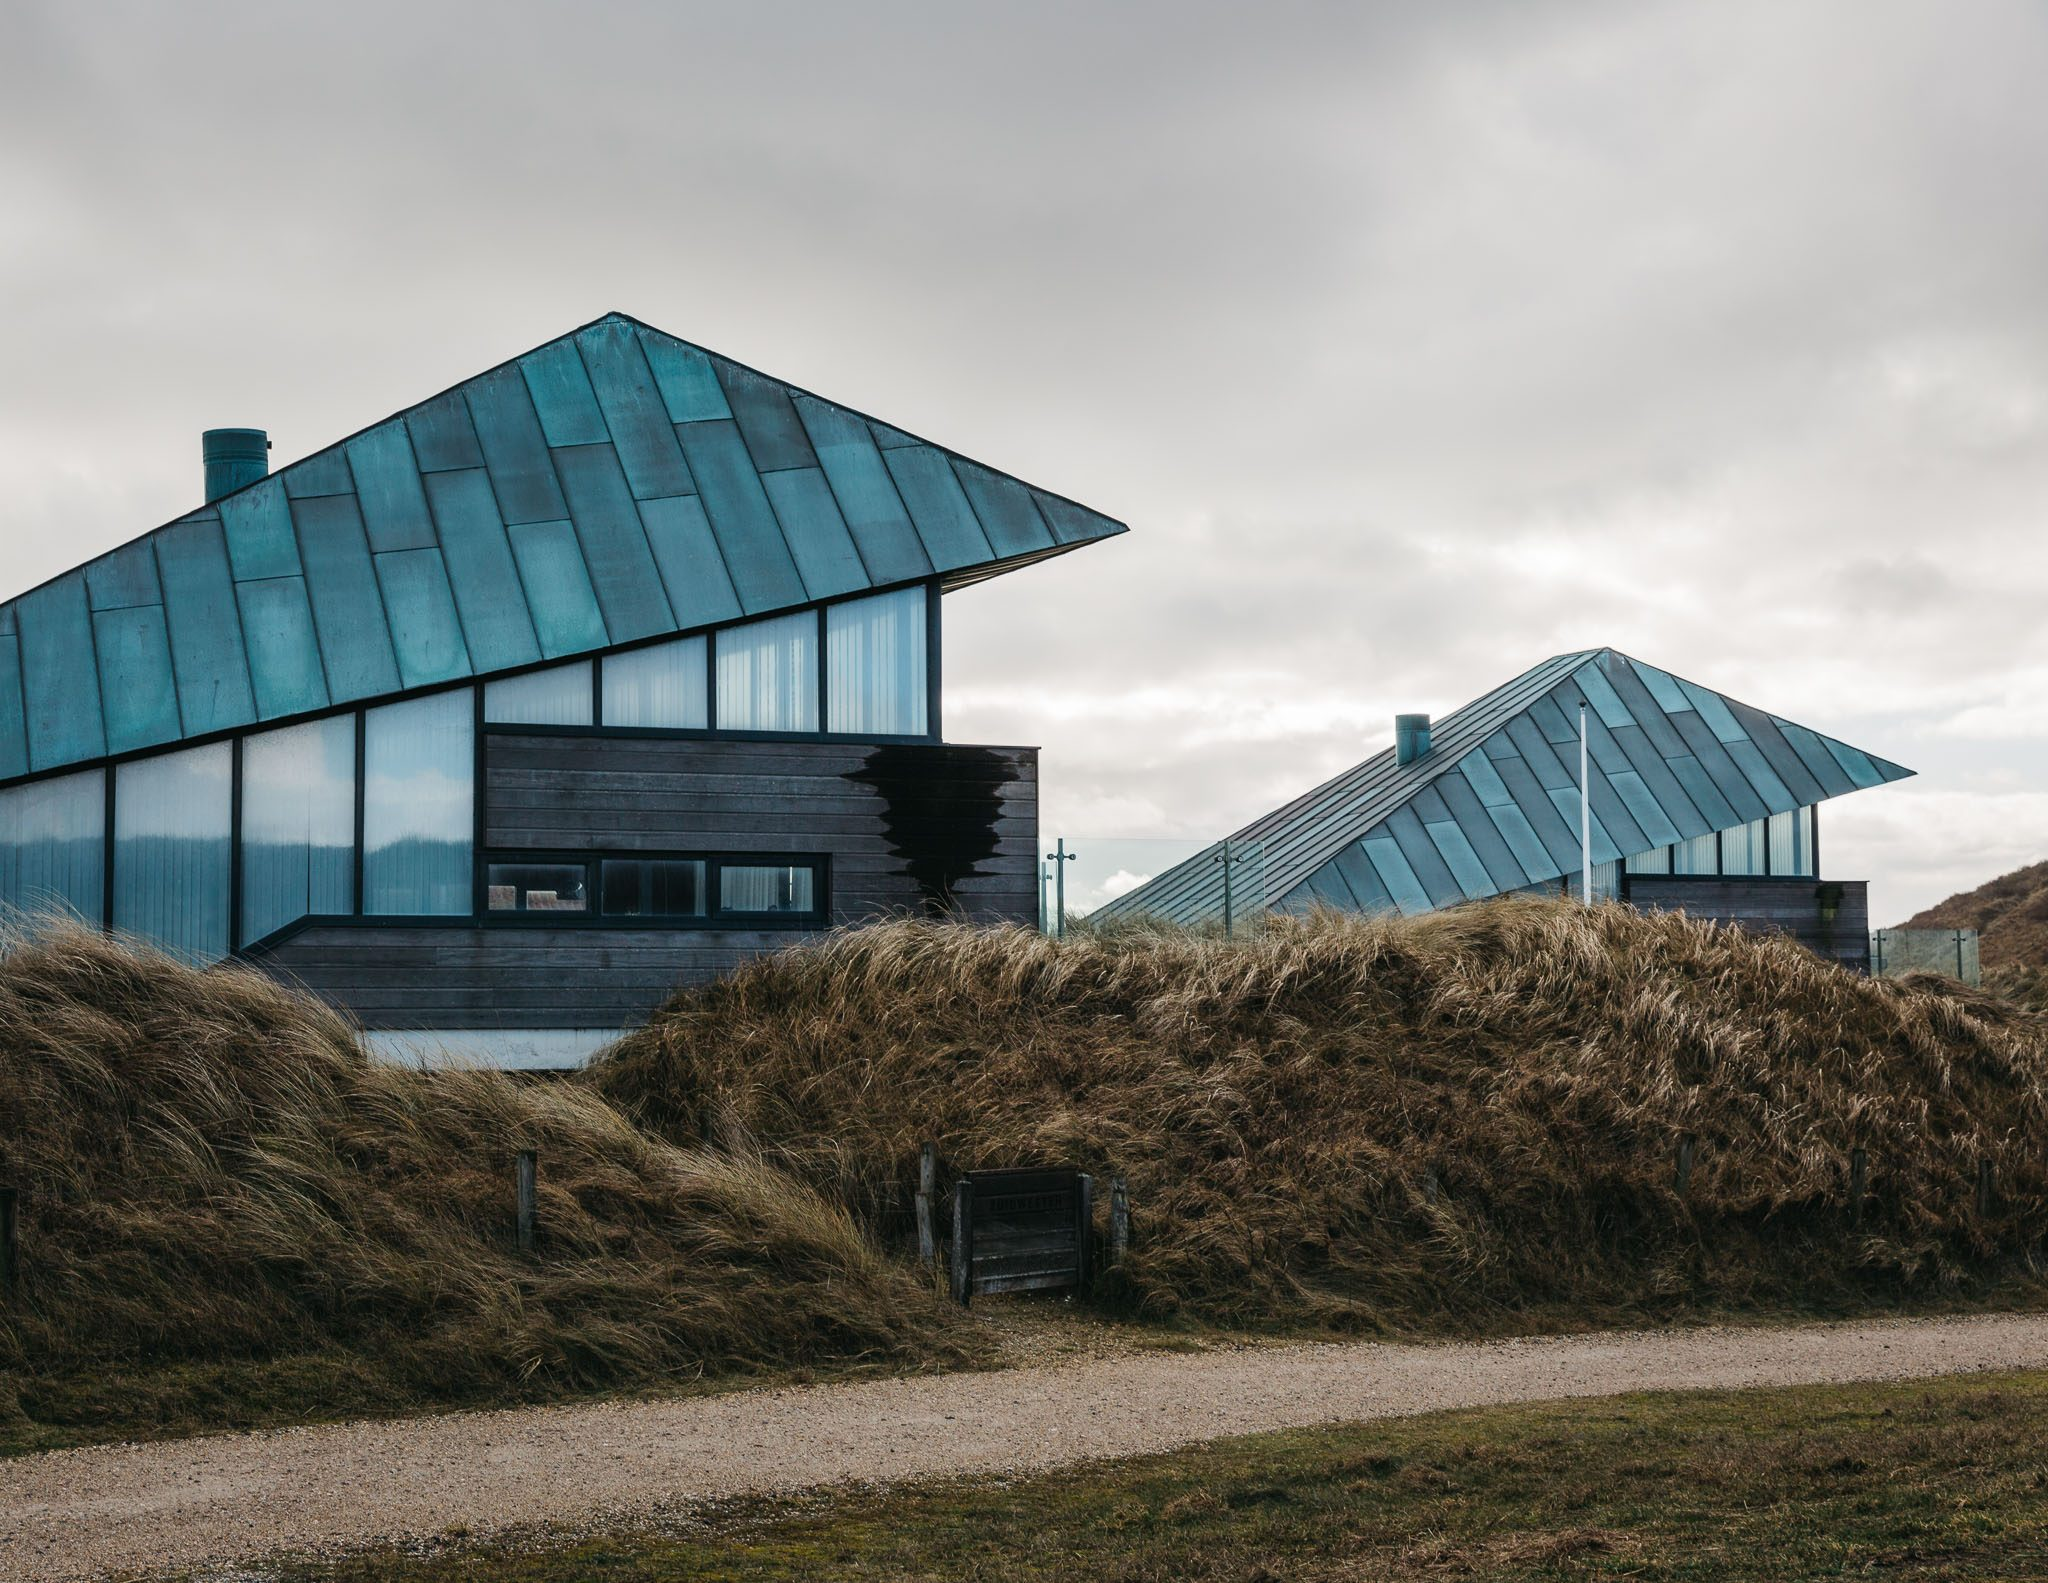 Holiday apartments in the dunes